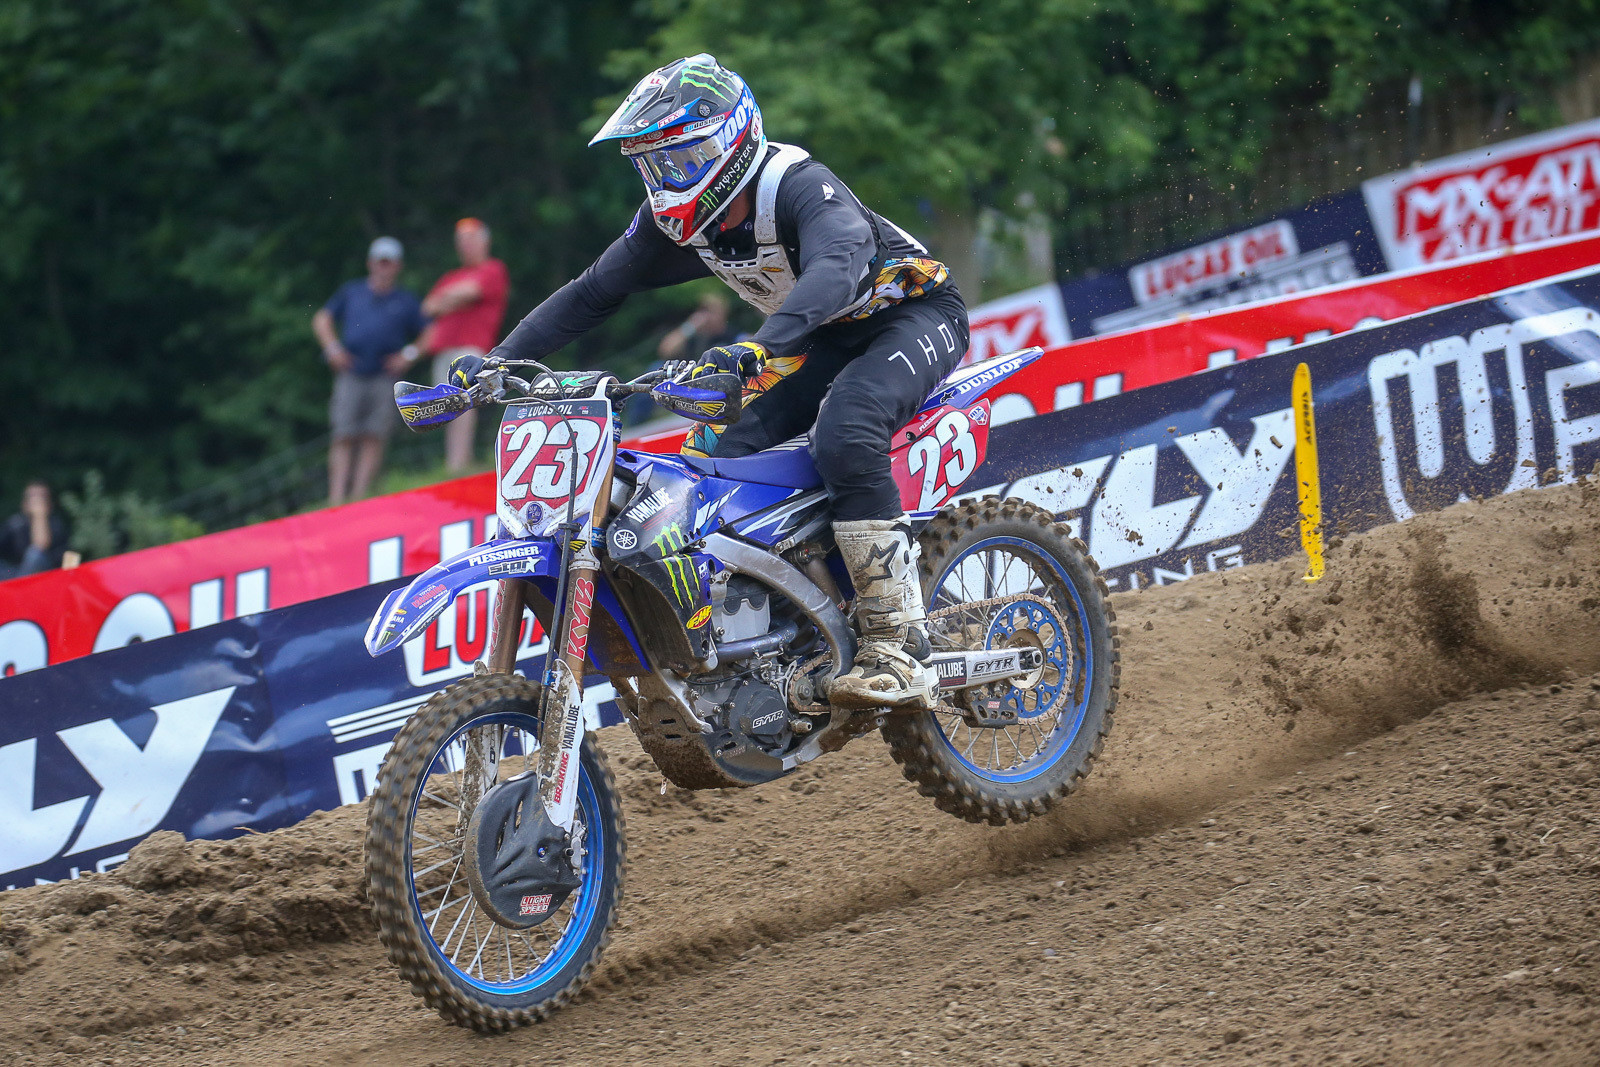 This will be Aaron Plessinger's first Motocross of Nations appearance.